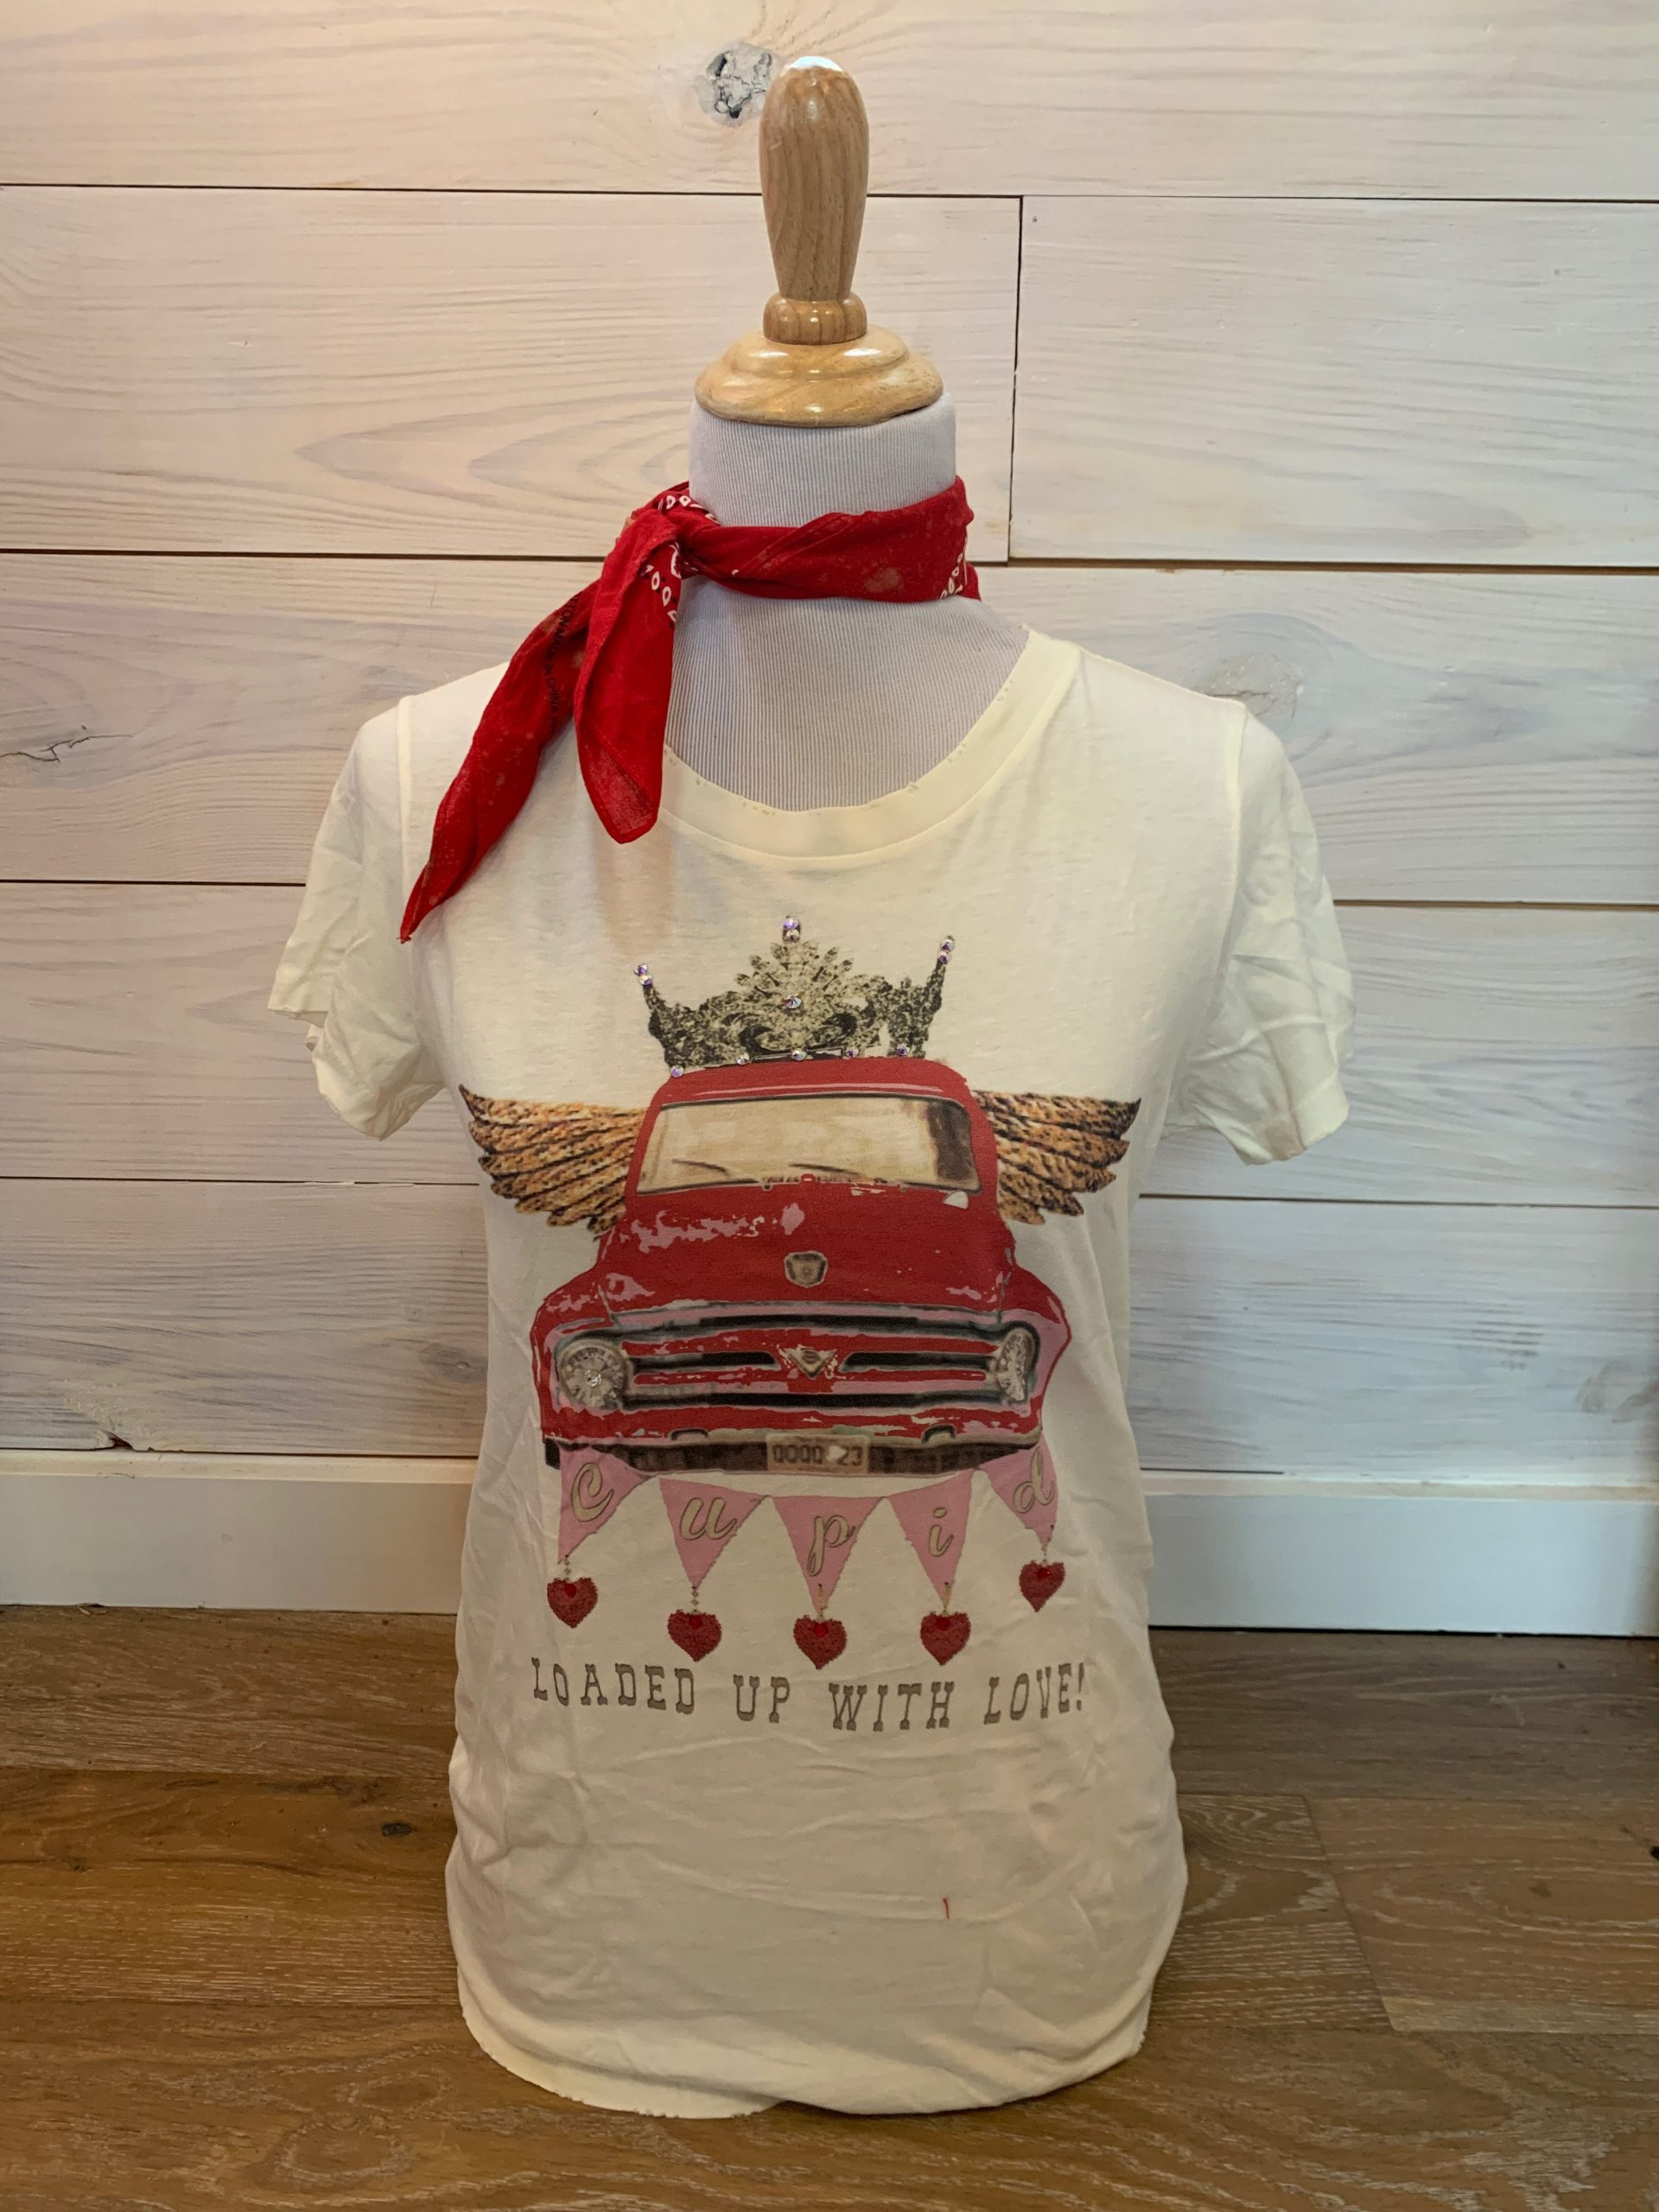 Loaded Up With Love Cream Distressed Tee